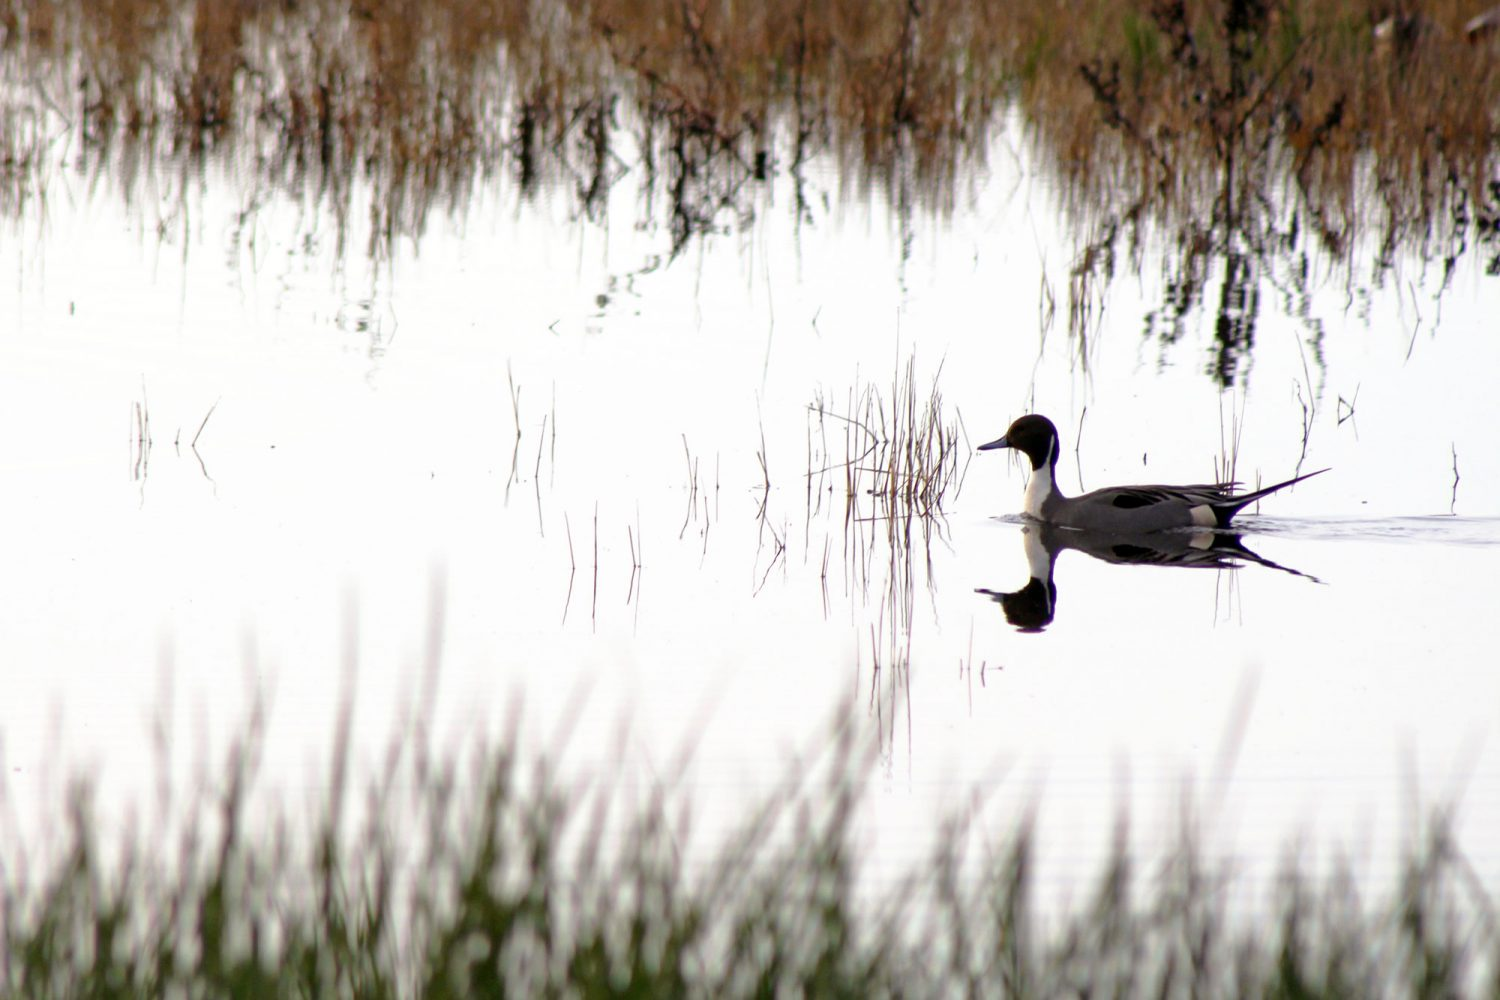 Ducks in the Cosumnes River Preserve